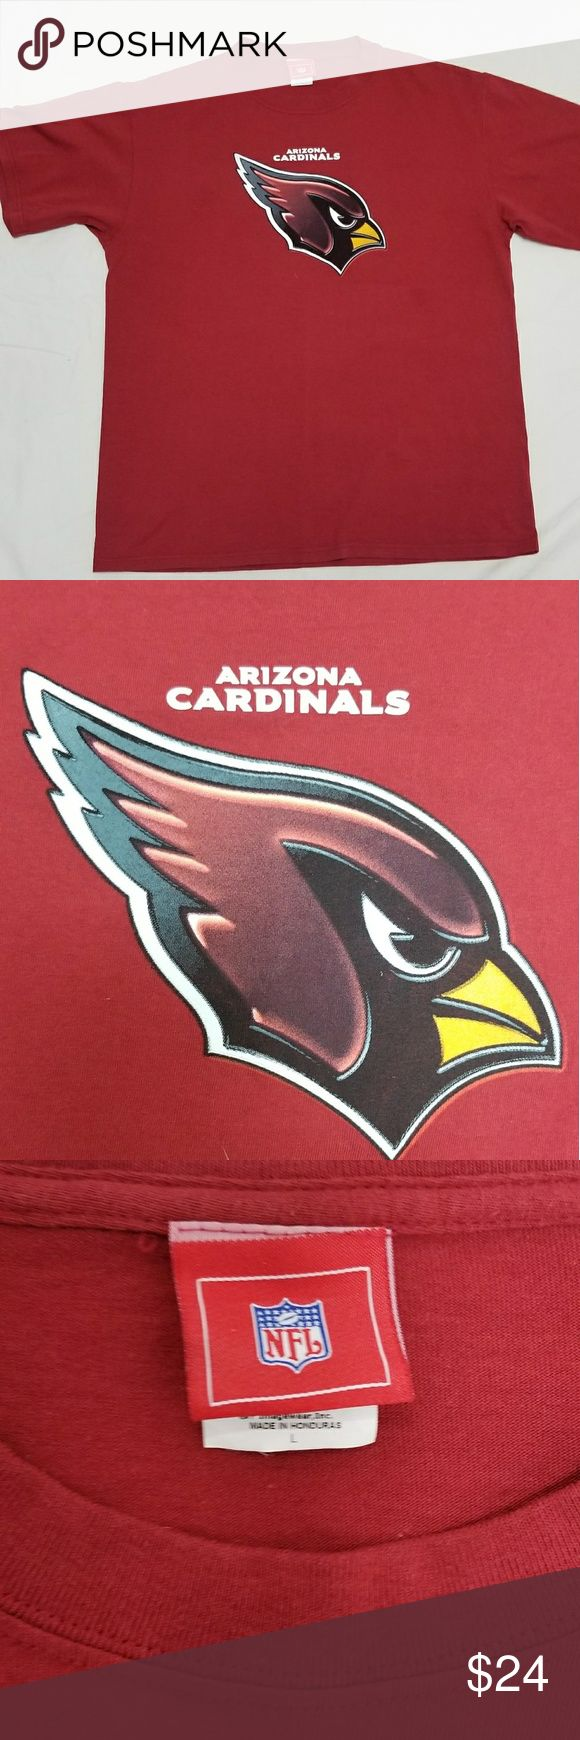 Authentic NFL Arizona Cardinals T-shirt SZ L 100% cotton......Great for wear to a game or to support your team anywhere. Shirts Tees - Short Sleeve